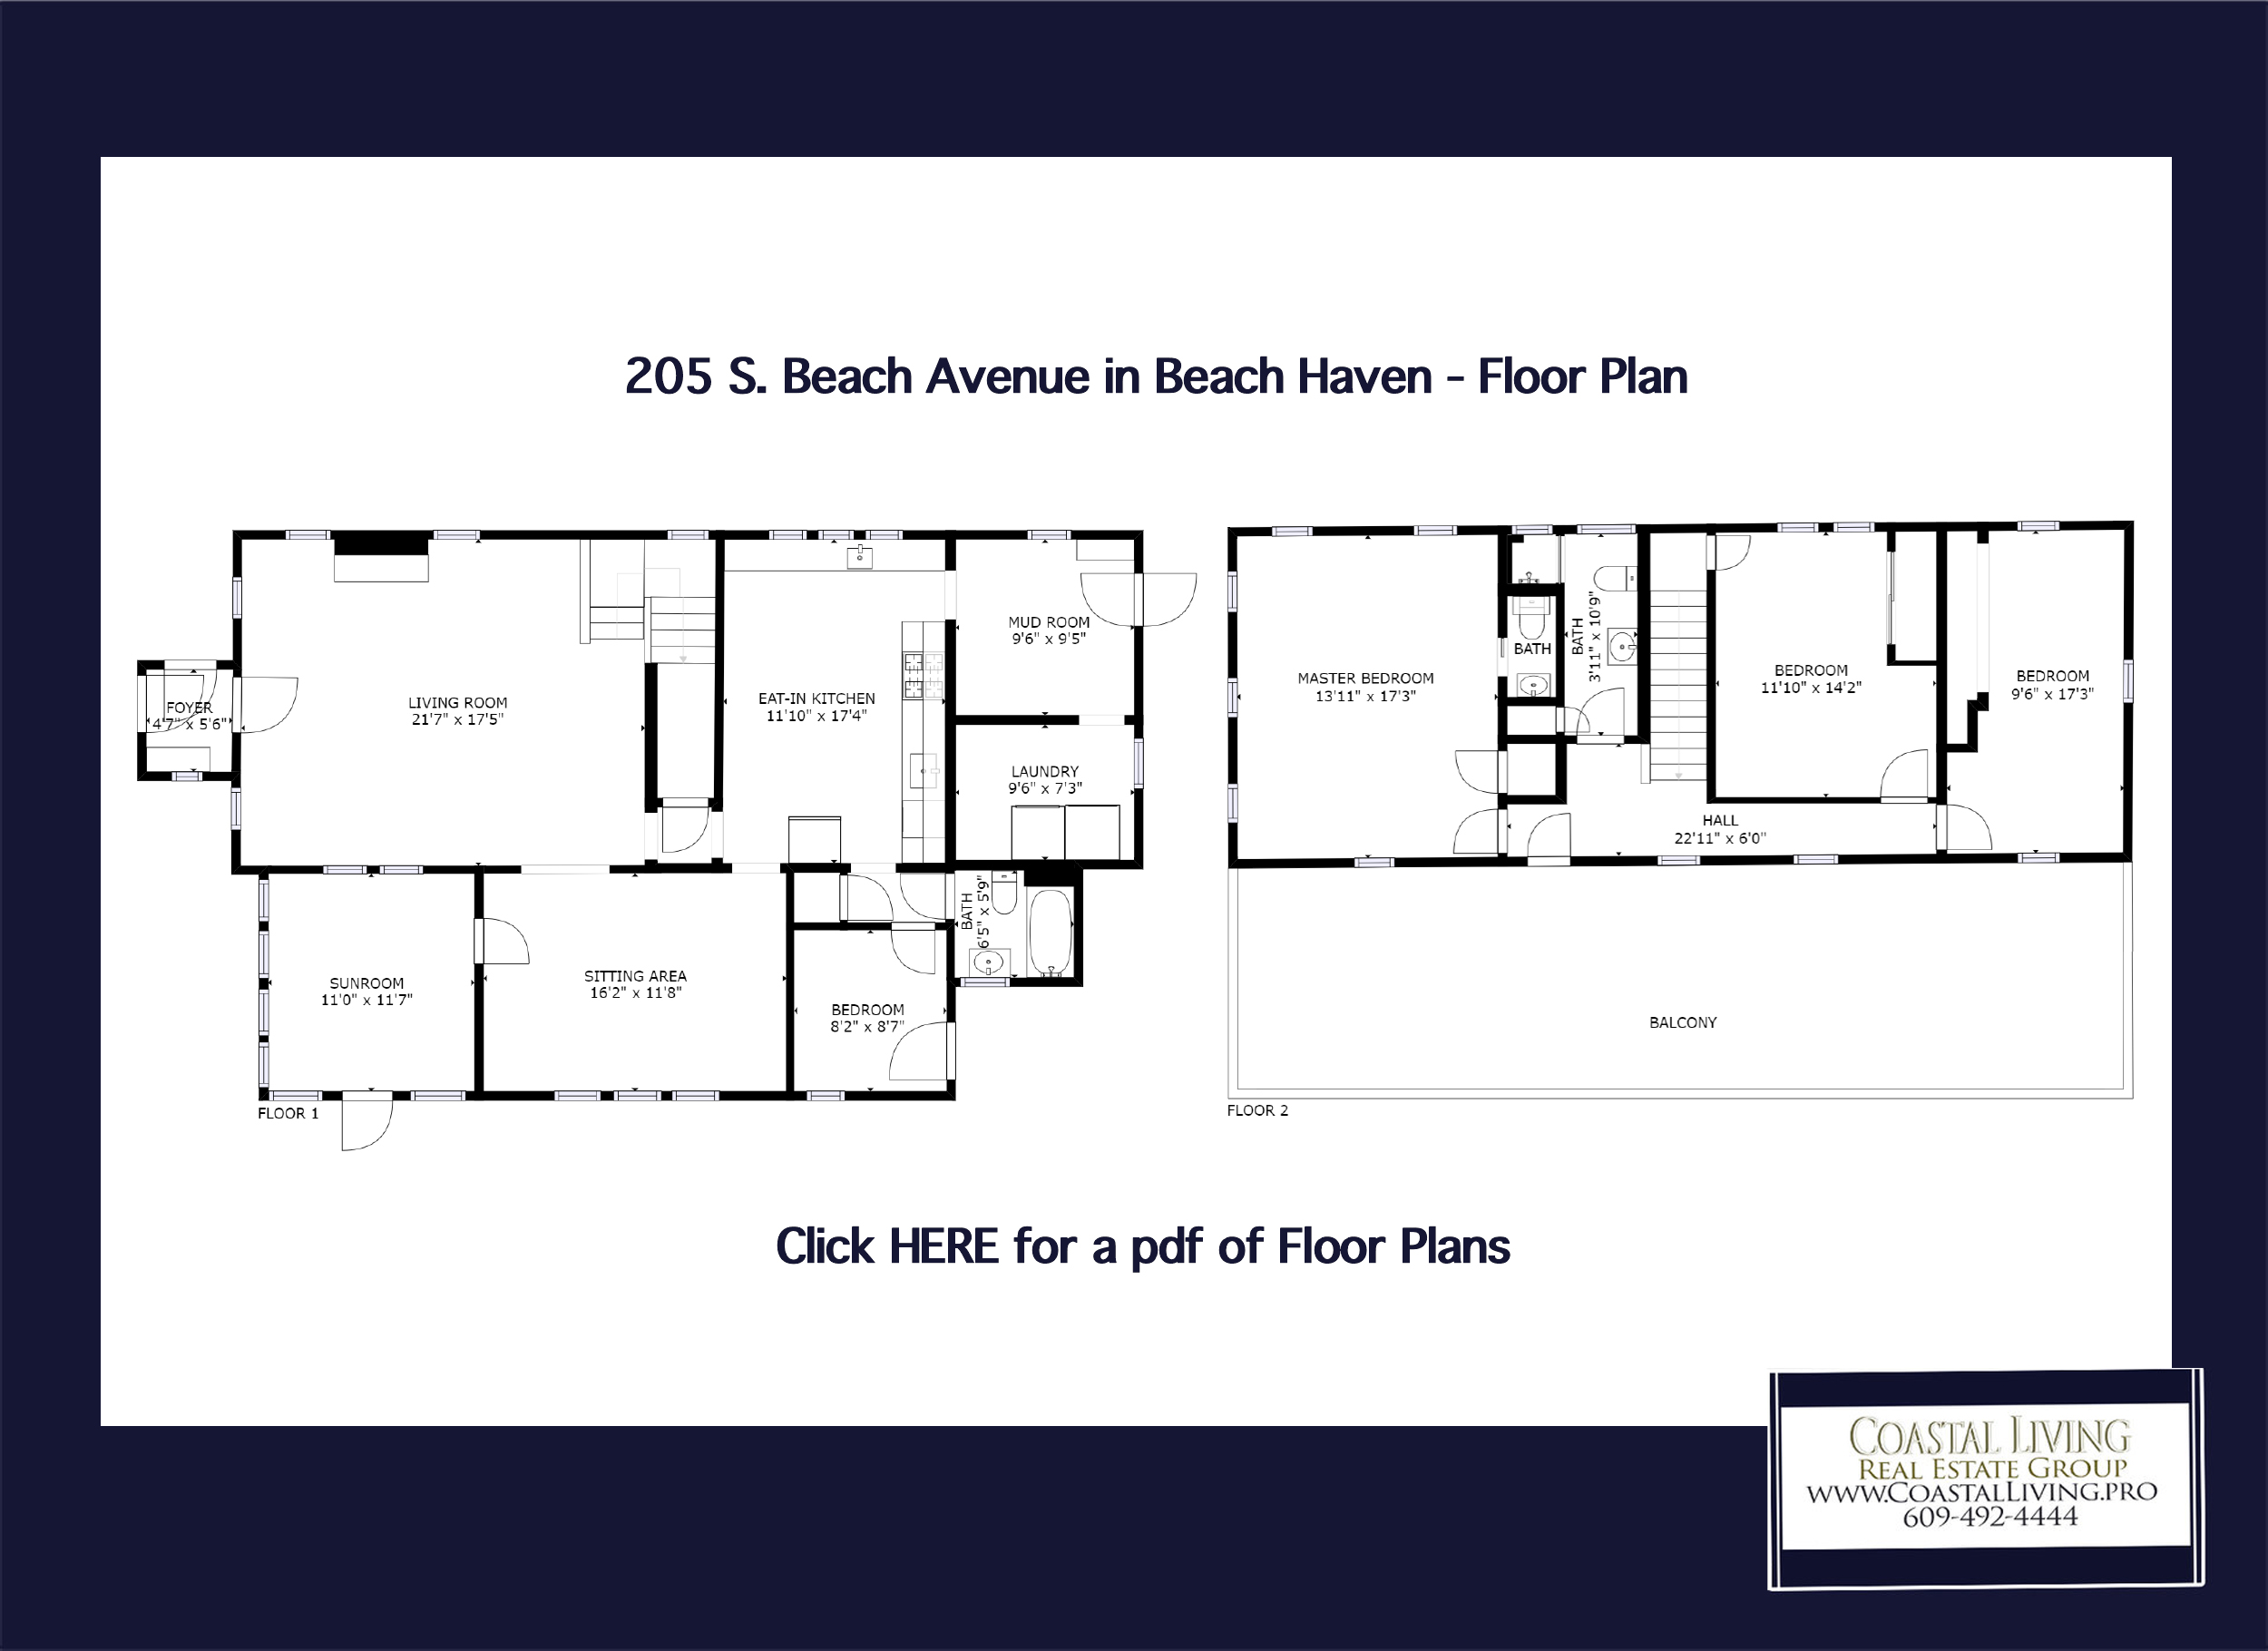 205 s beach floor plan logo1.jpg